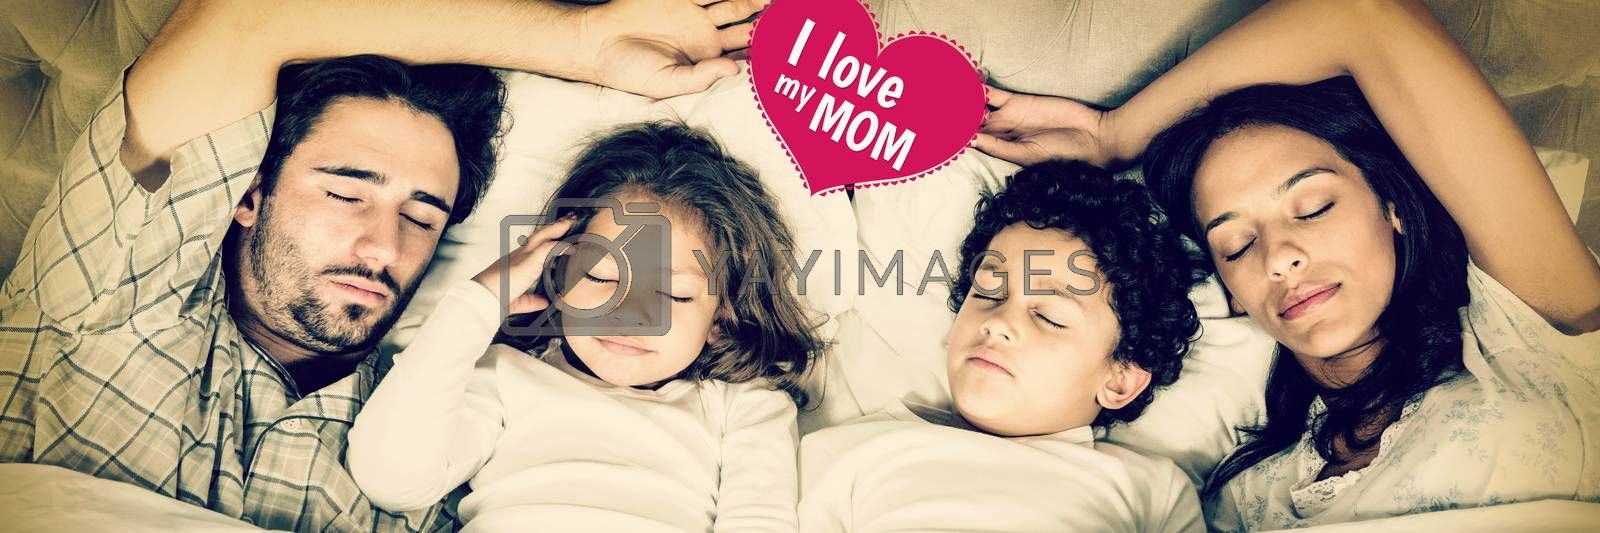 mothers day greeting against happy family sleeping together